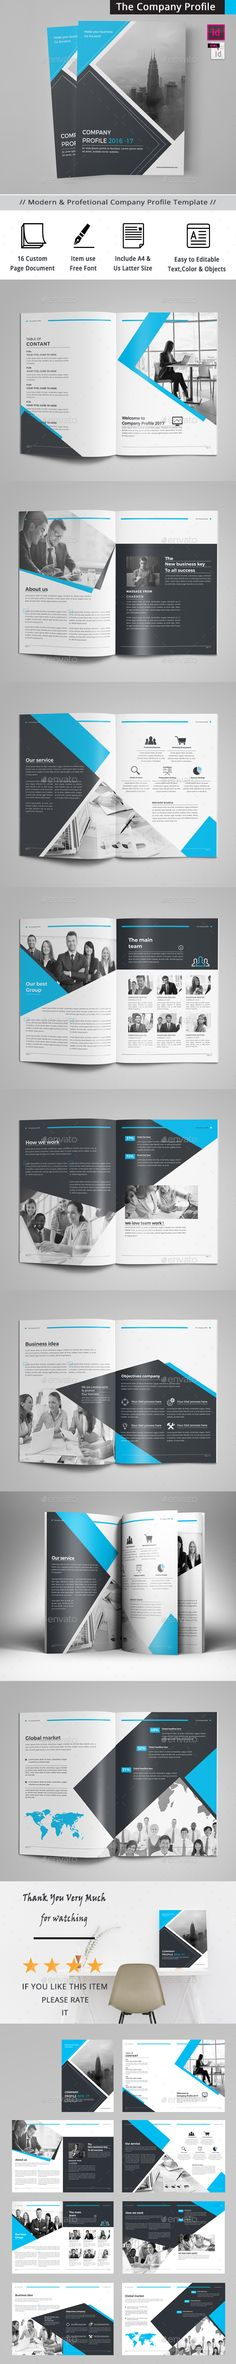 Company Profile Brochure 2017 Template InDesign INDD   Company ...